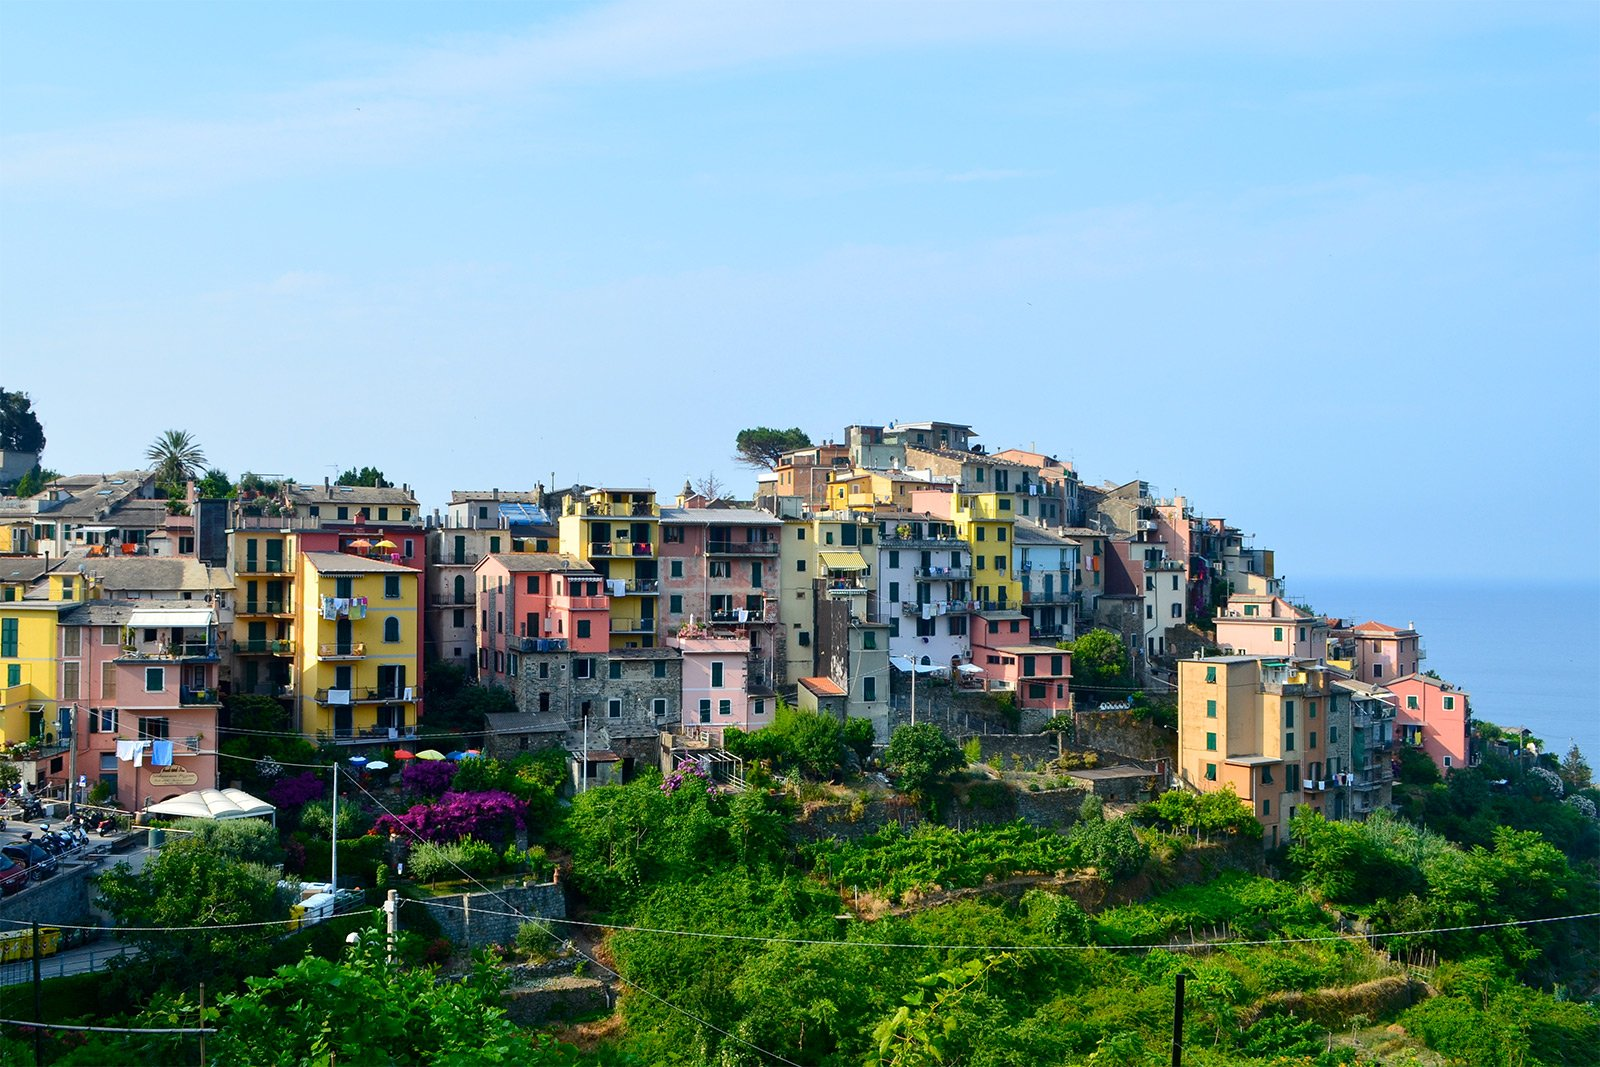 How to take a walk on Corniglia in Genoa